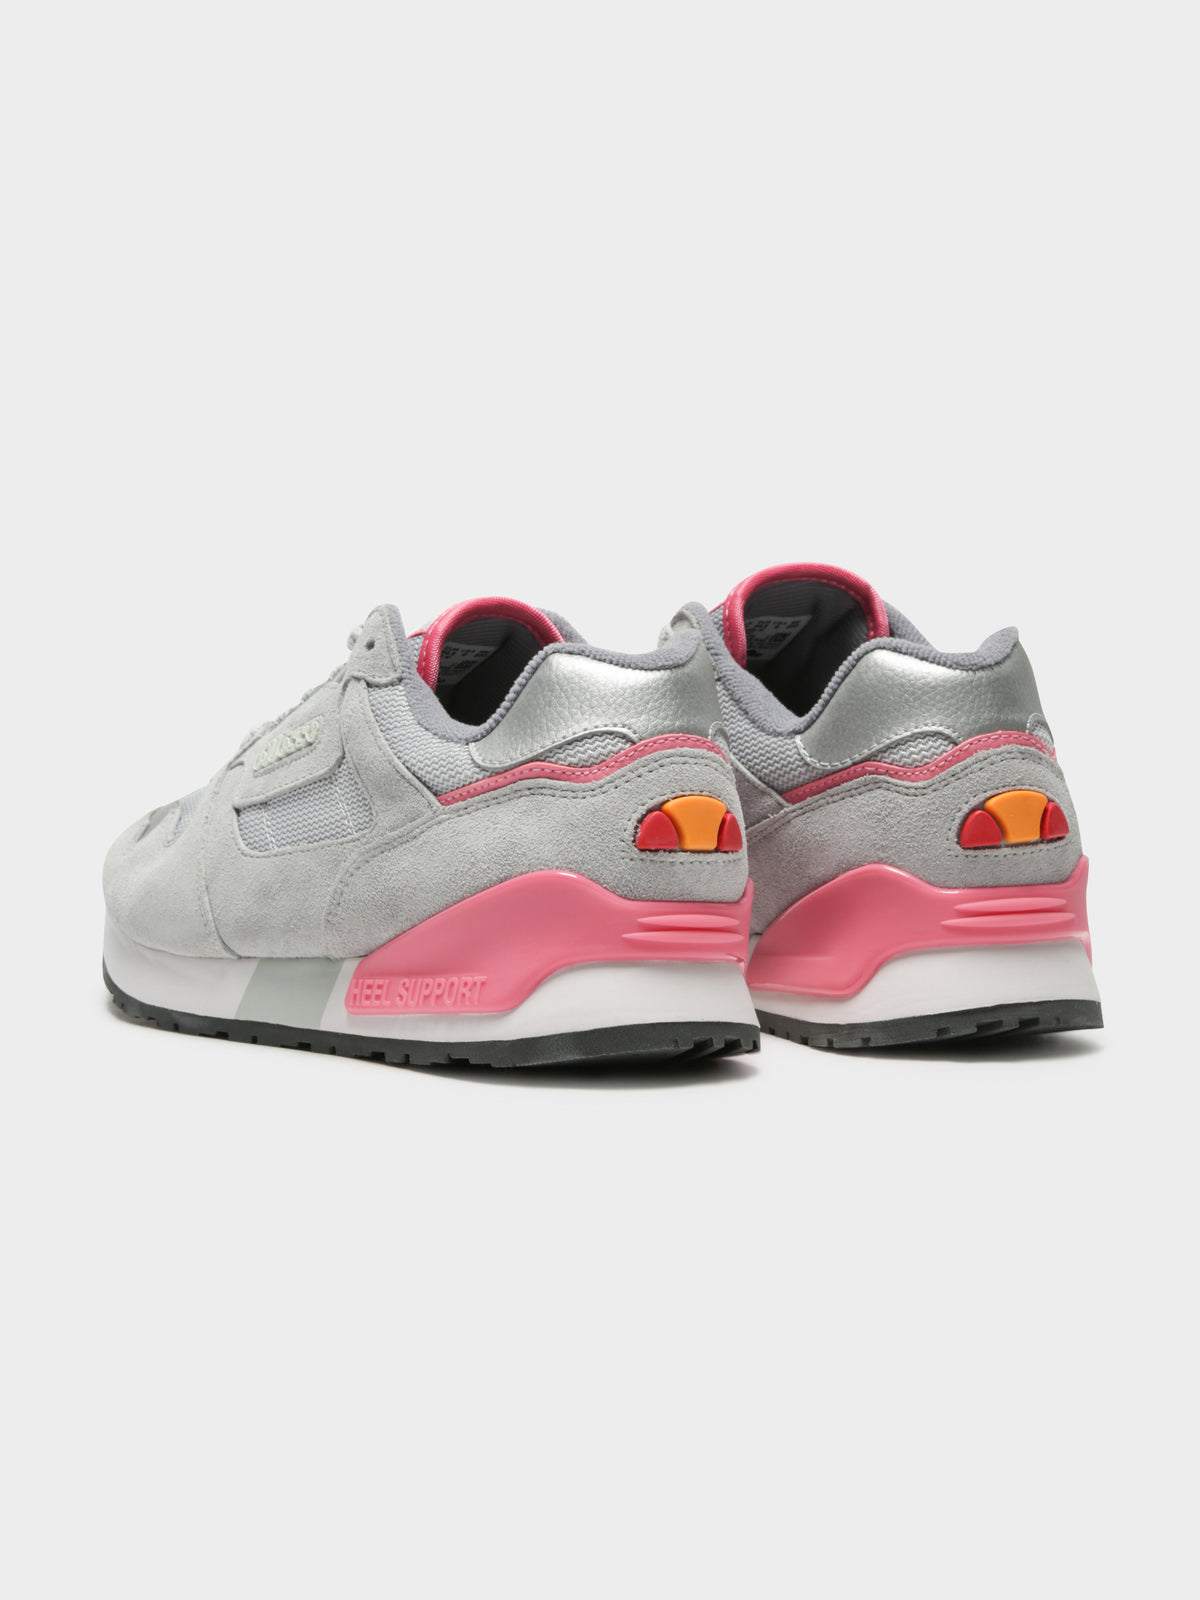 Womens 147 Suede Sneakers in Grey & Pink